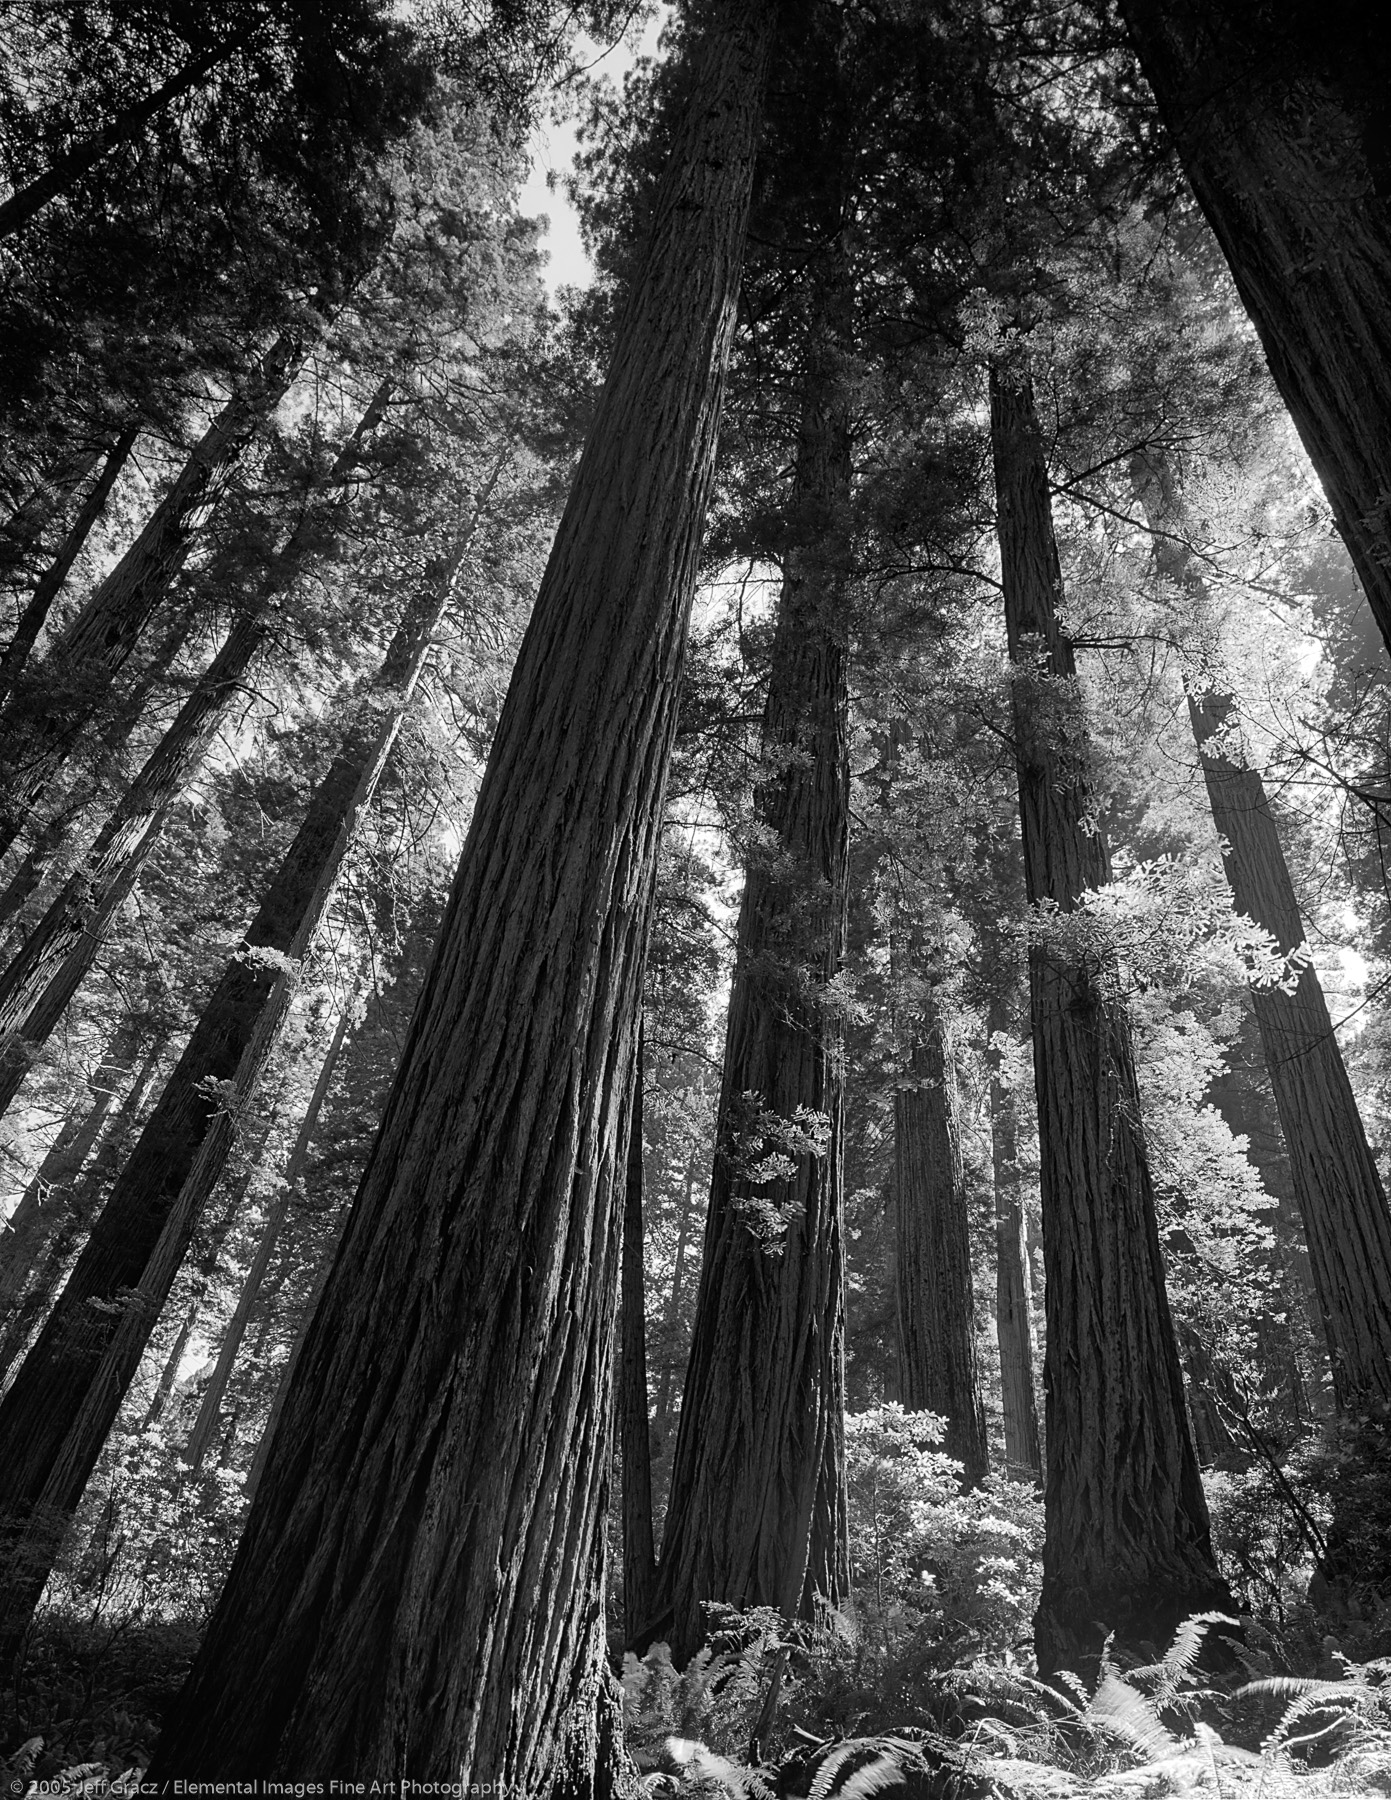 old growth redwoods      CA   USA - © © 2005 Jeff Gracz / Elemental Images Fine Art Photography - All Rights Reserved Worldwide